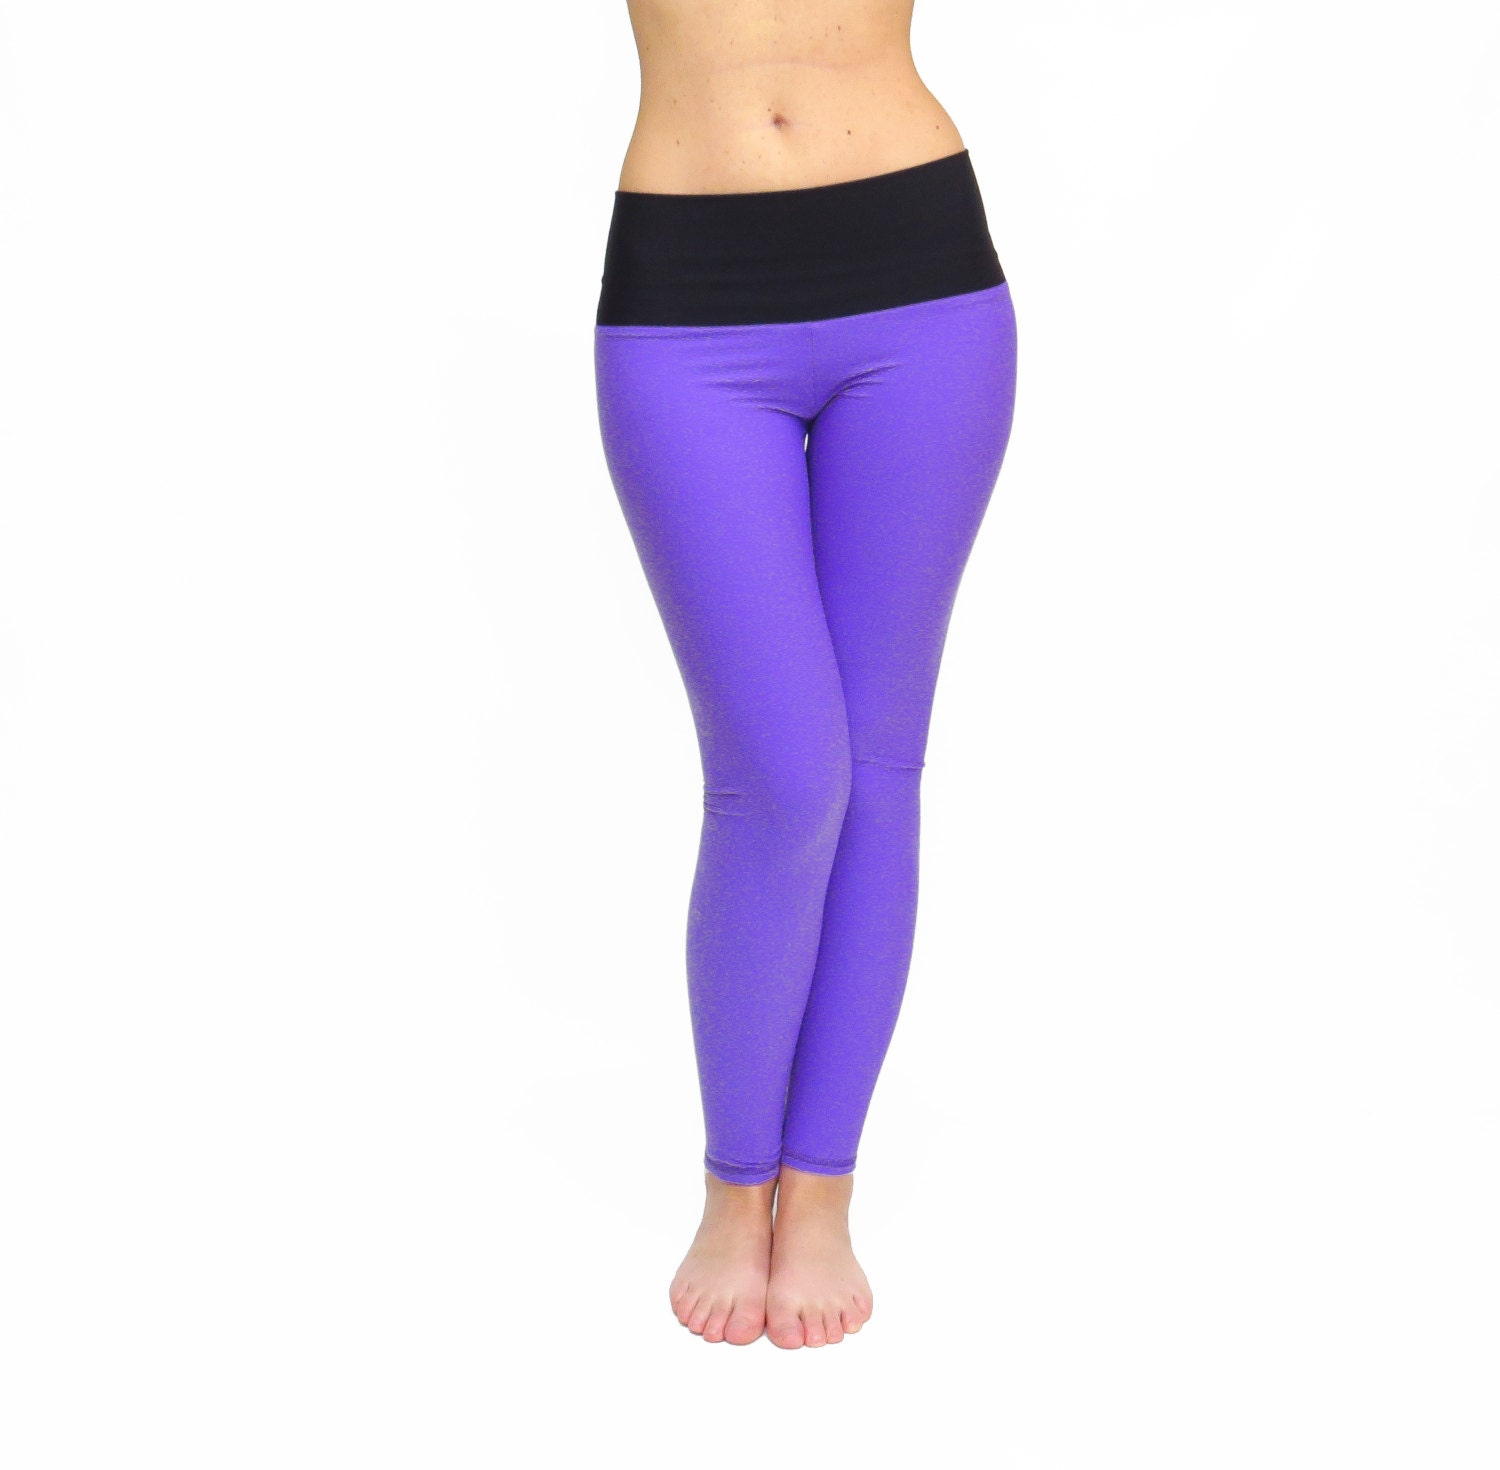 Find great deals on eBay for purple yoga pants. Shop with confidence.